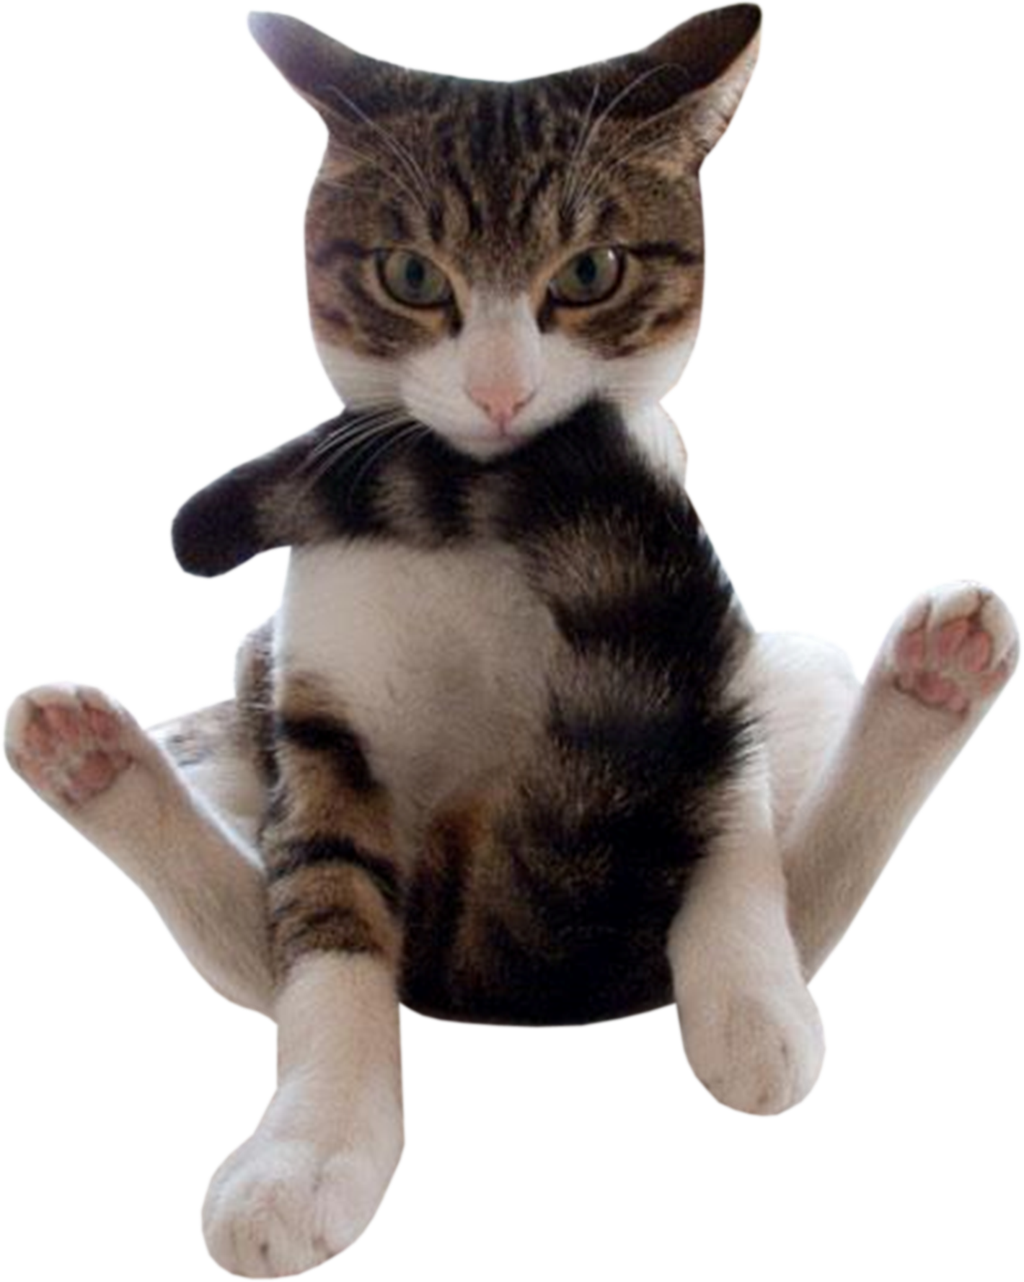 Funny animals png. Cat by northernstarimages on